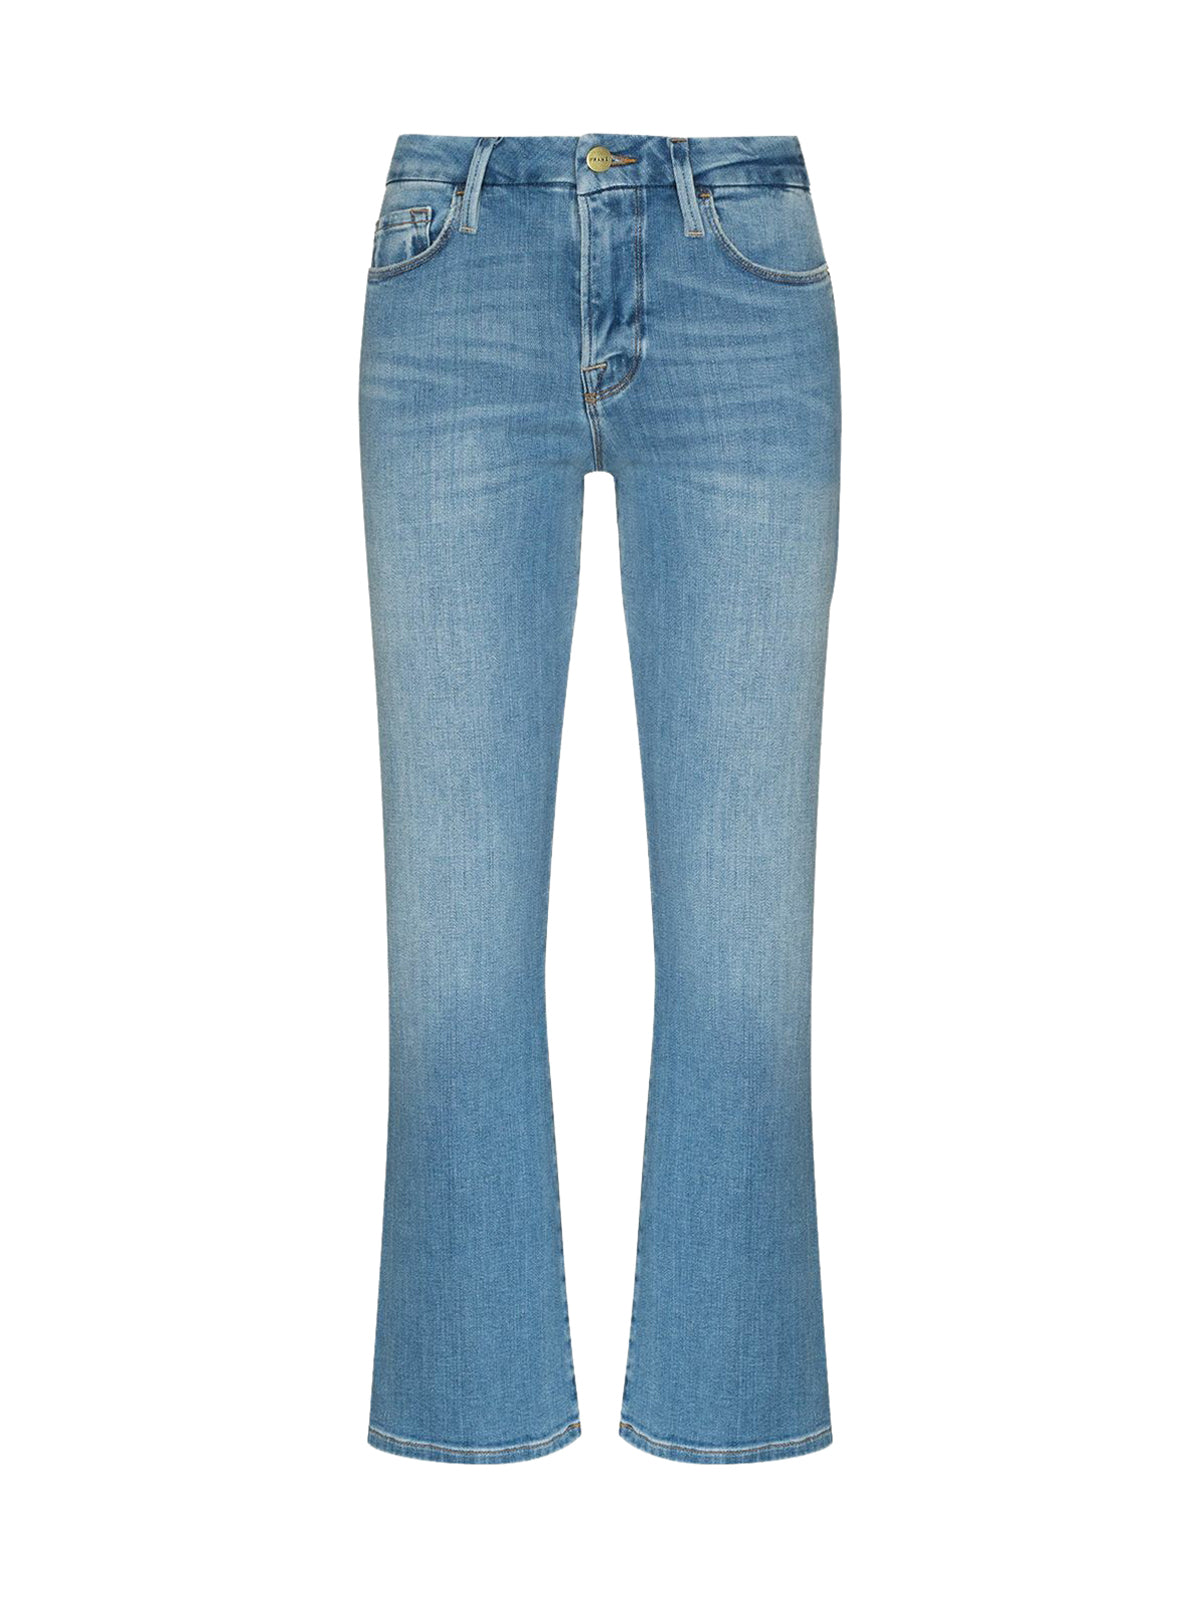 Le Crop skinny bootcut jeans